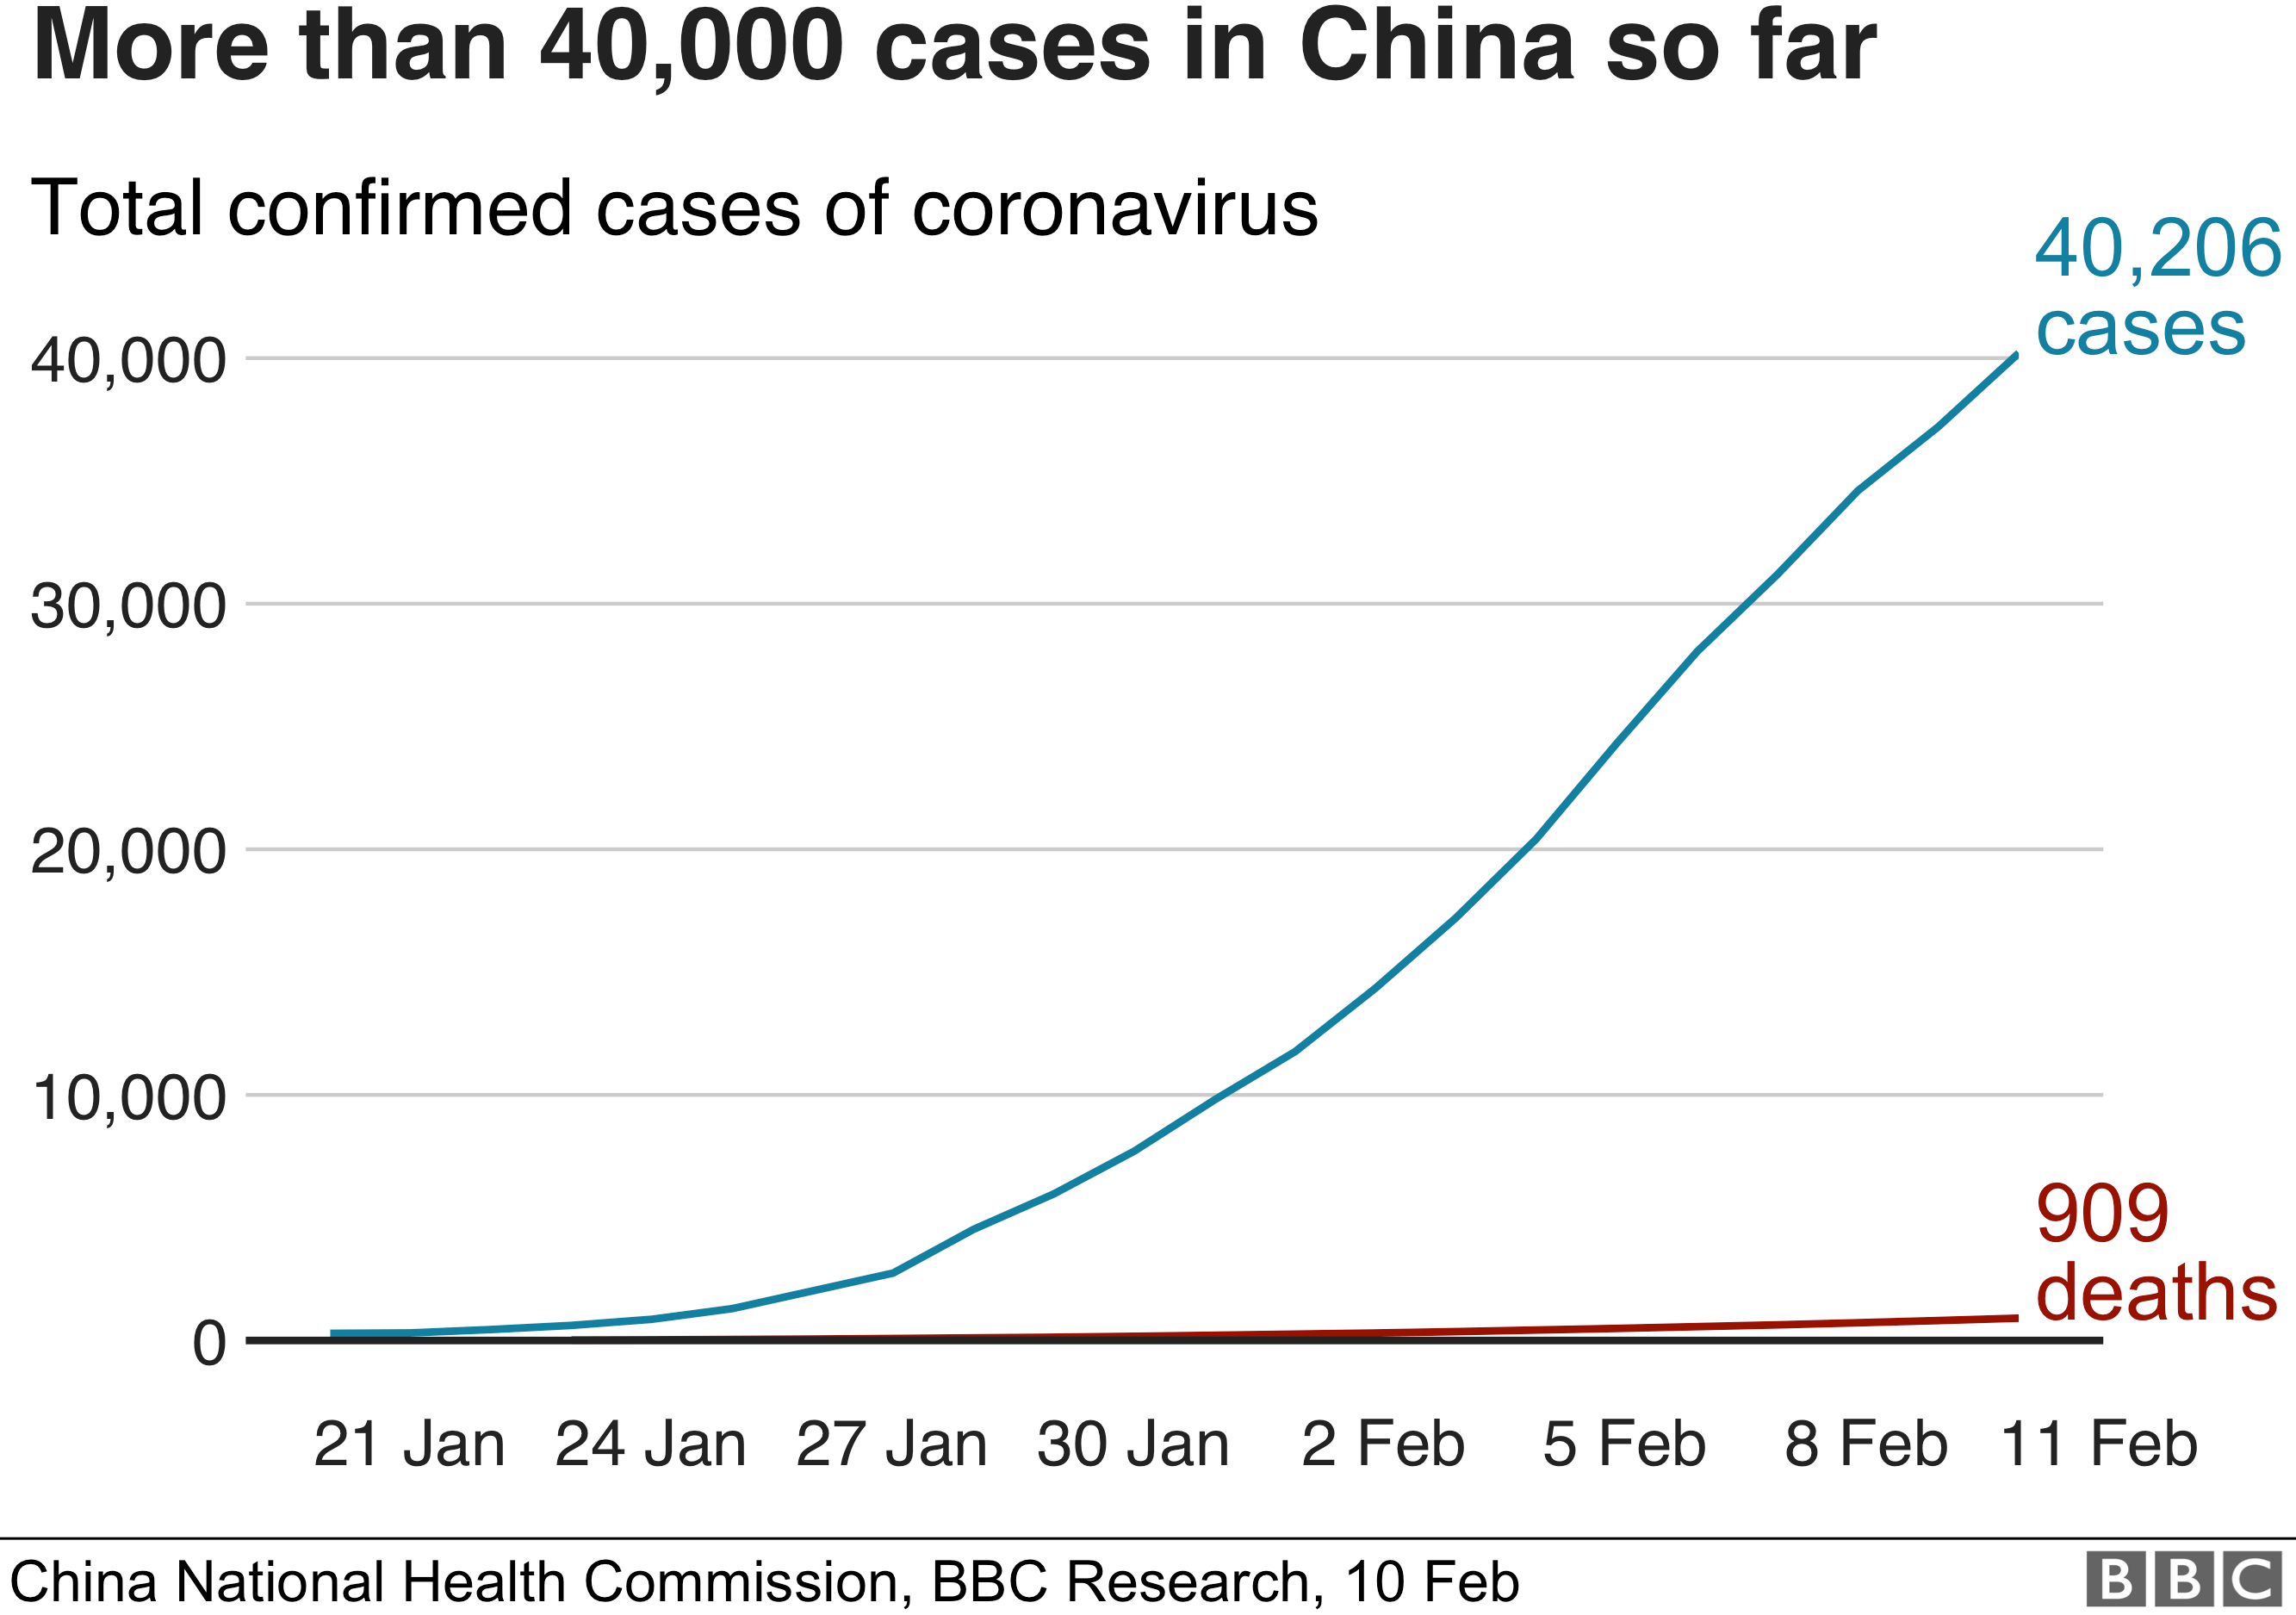 Chart showing more than 40,000 cases and more than 900 deaths in China